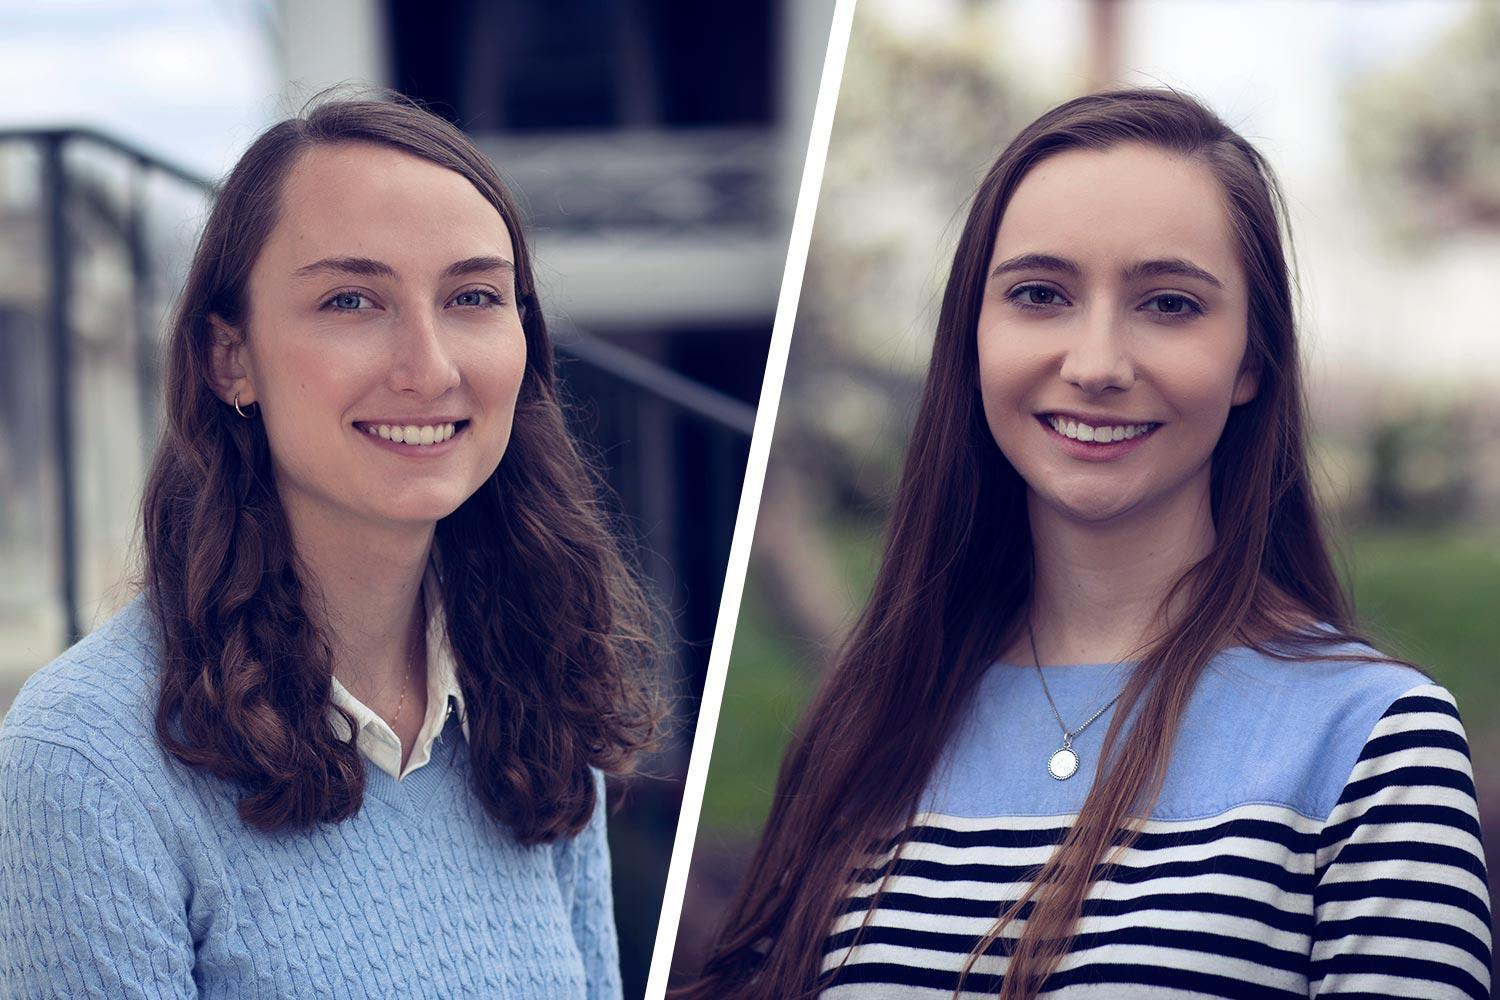 As Beckman Scholars, third-year students Melanie Piller, left, and Monika Grabowska each will receive $21,000 in stipend and travel expenses for two summers and one academic year.